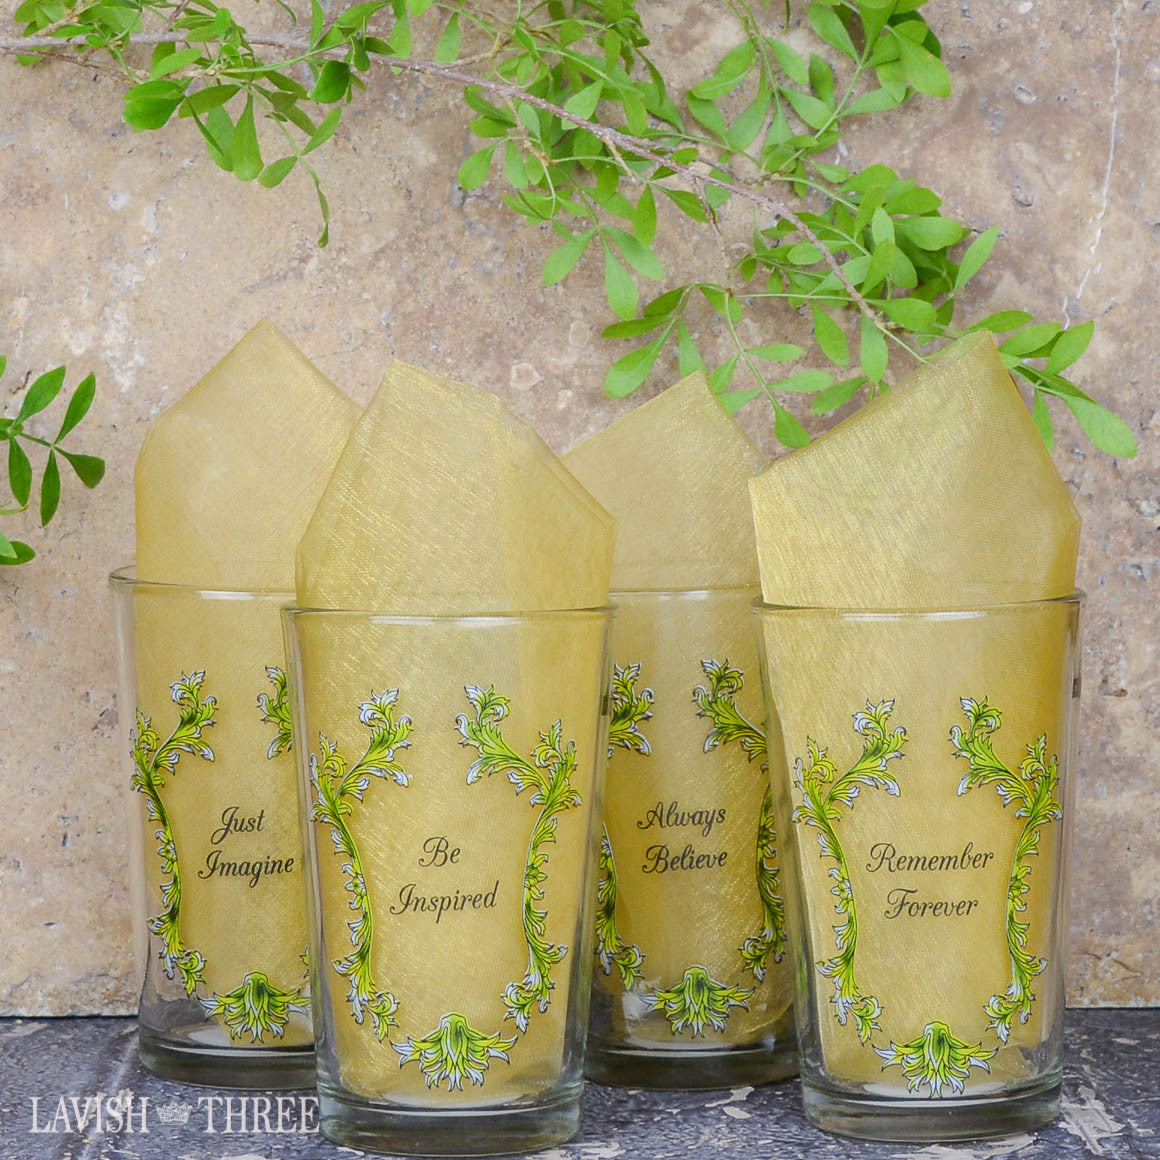 Royal crown mini orange juice glasses with inspirational sayings lavish three 3